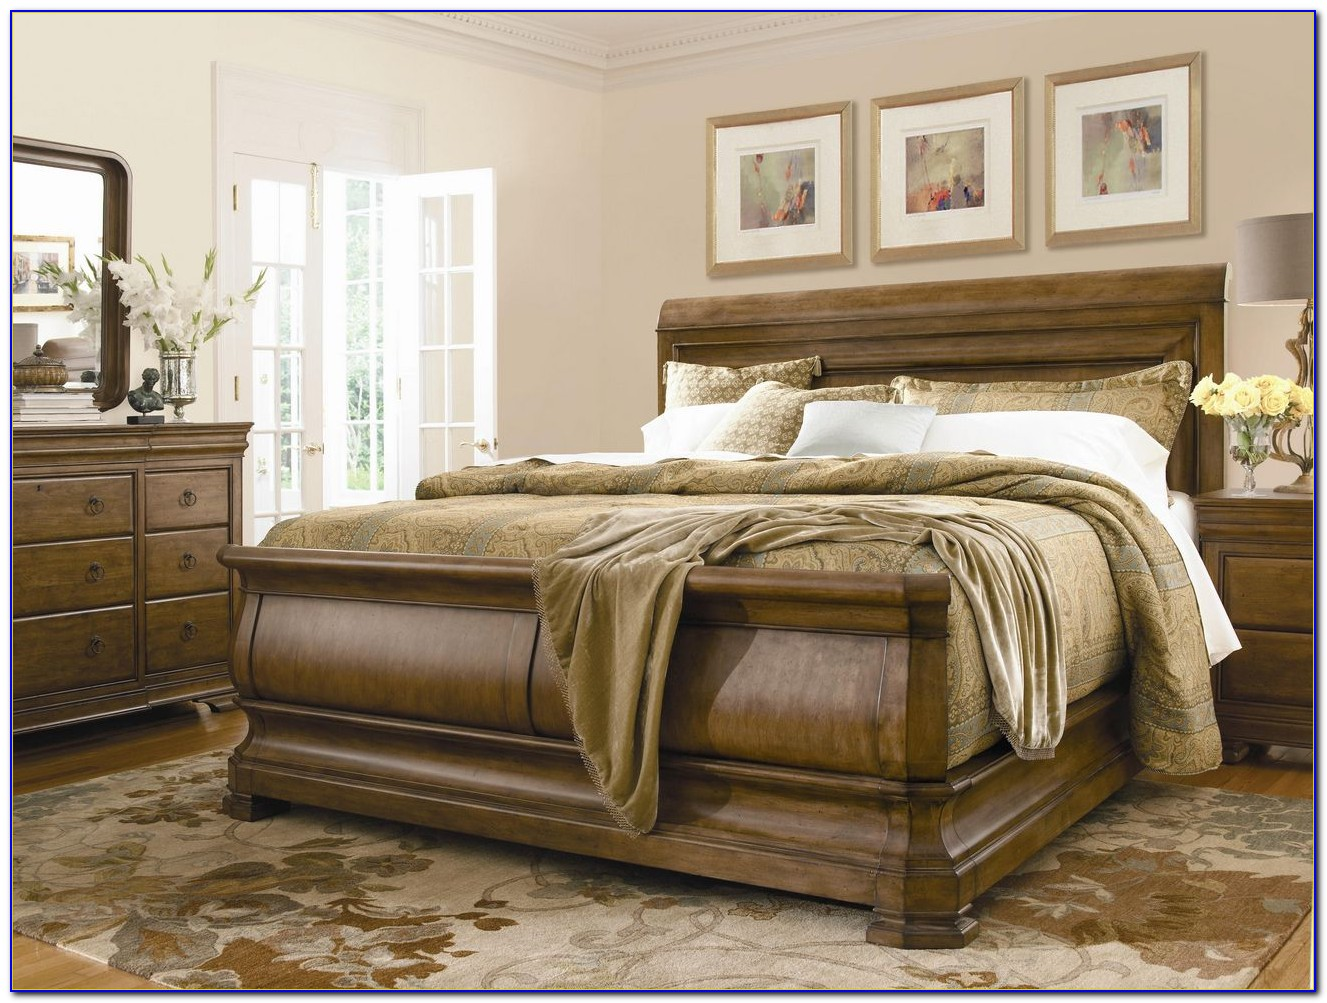 Pennsylvania House Cherry Bedroom Set